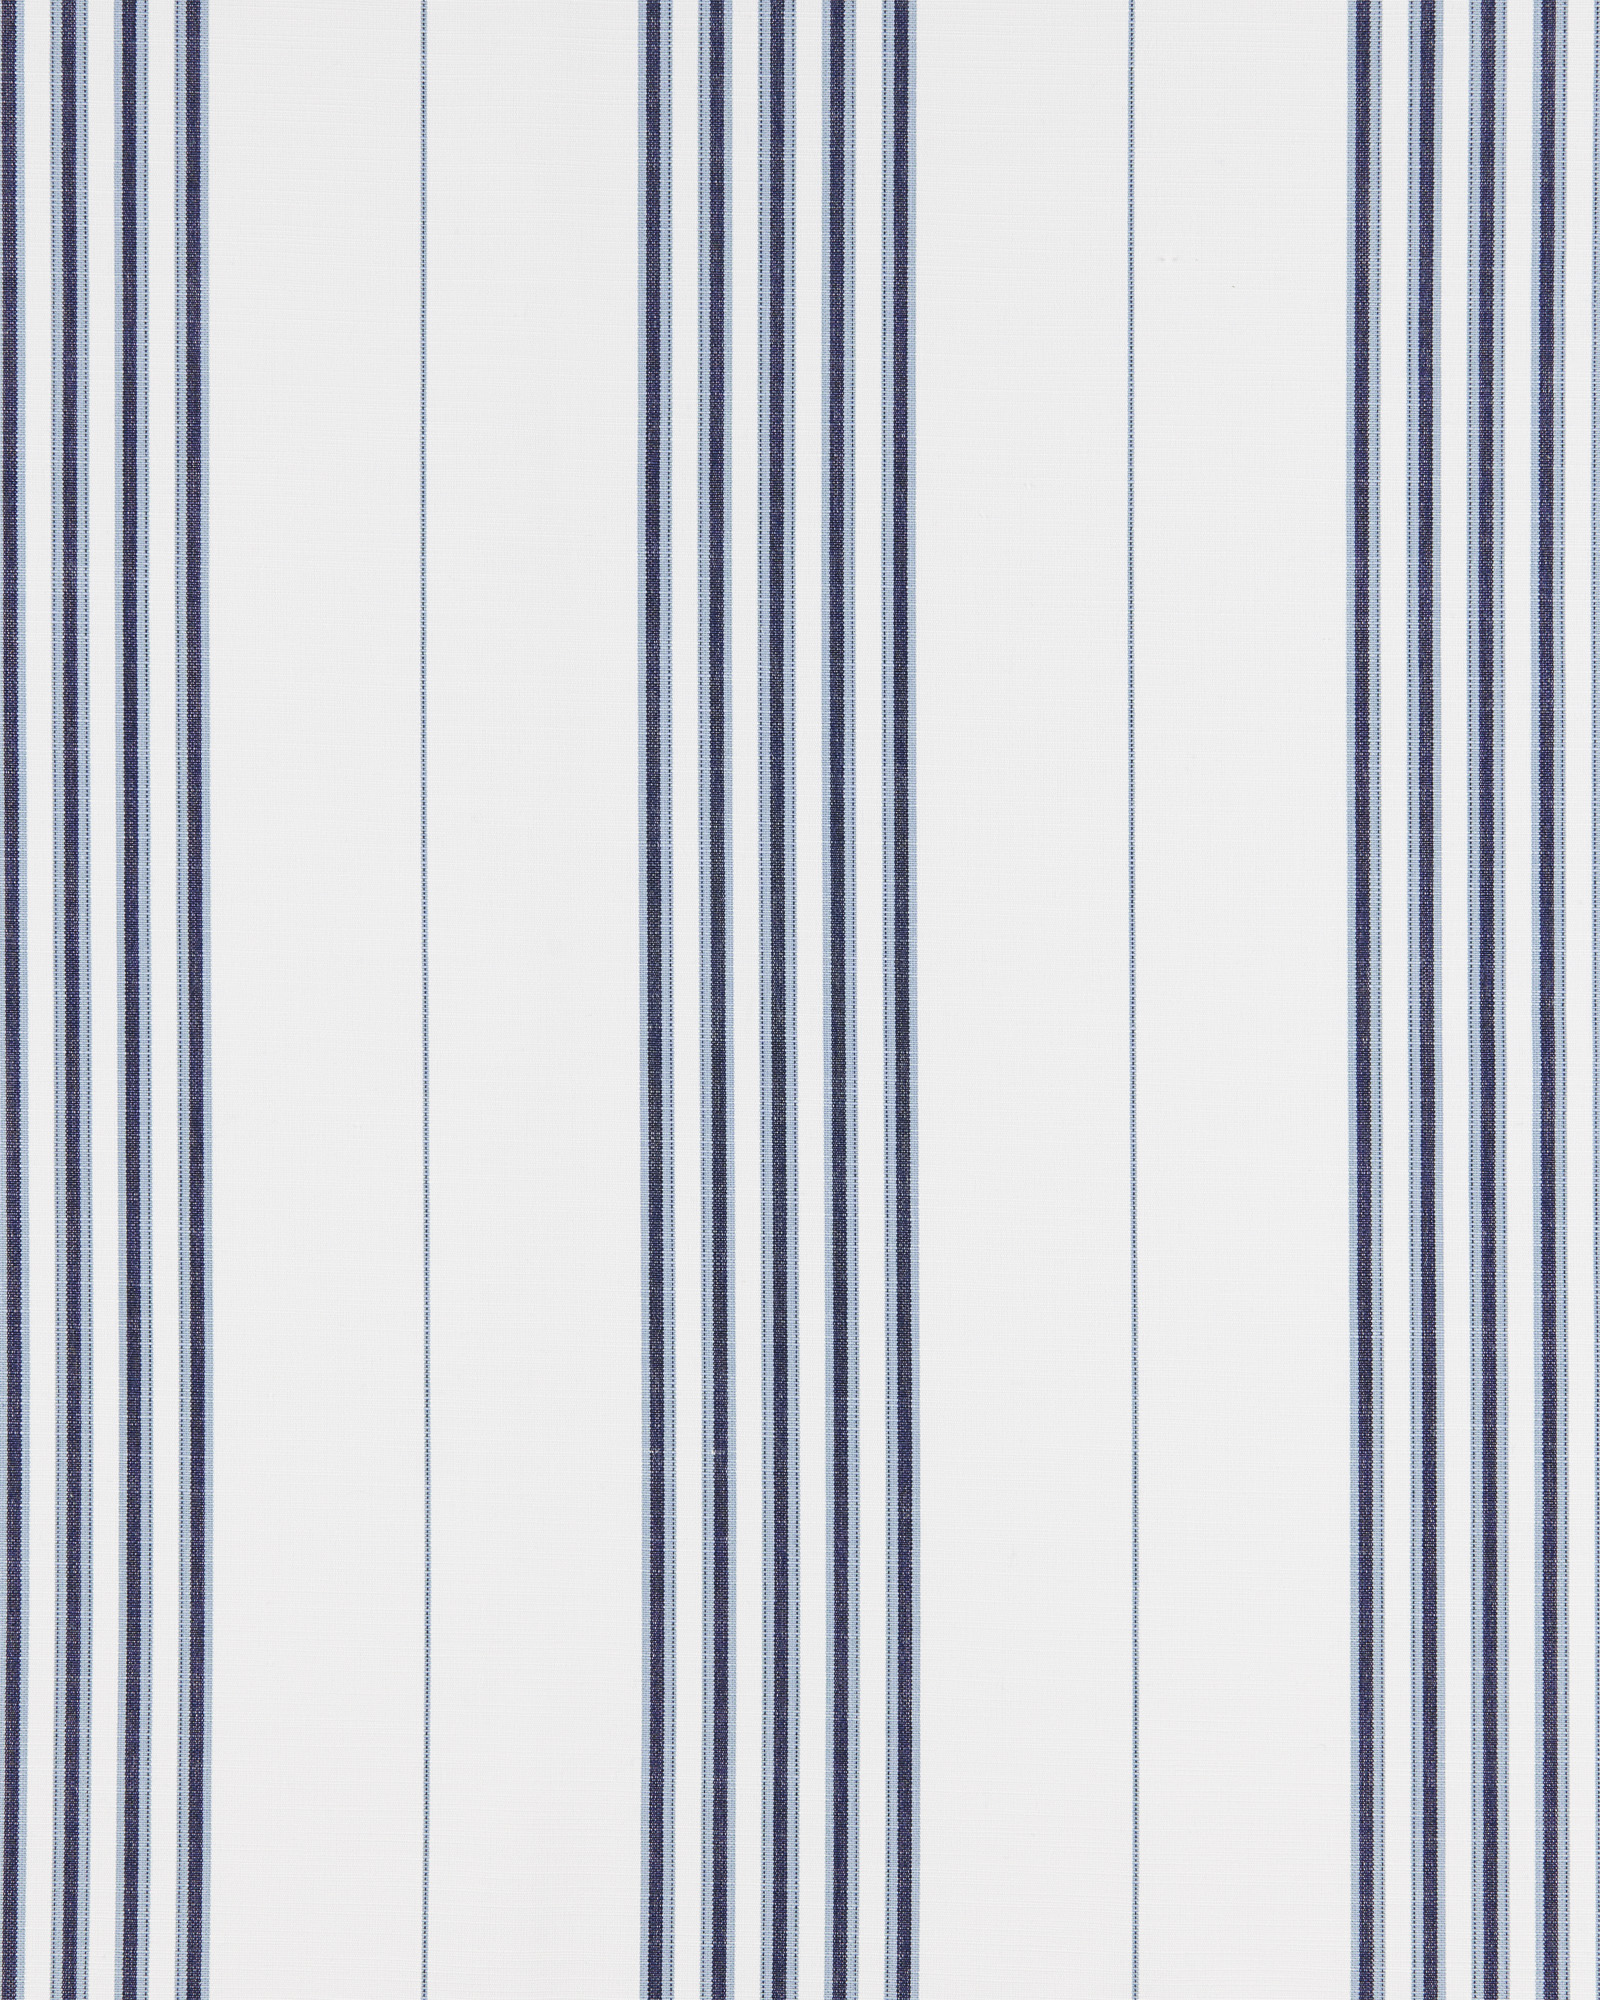 Fabric By the Yard - Perennials Lake Stripe Fabric, White/Navy